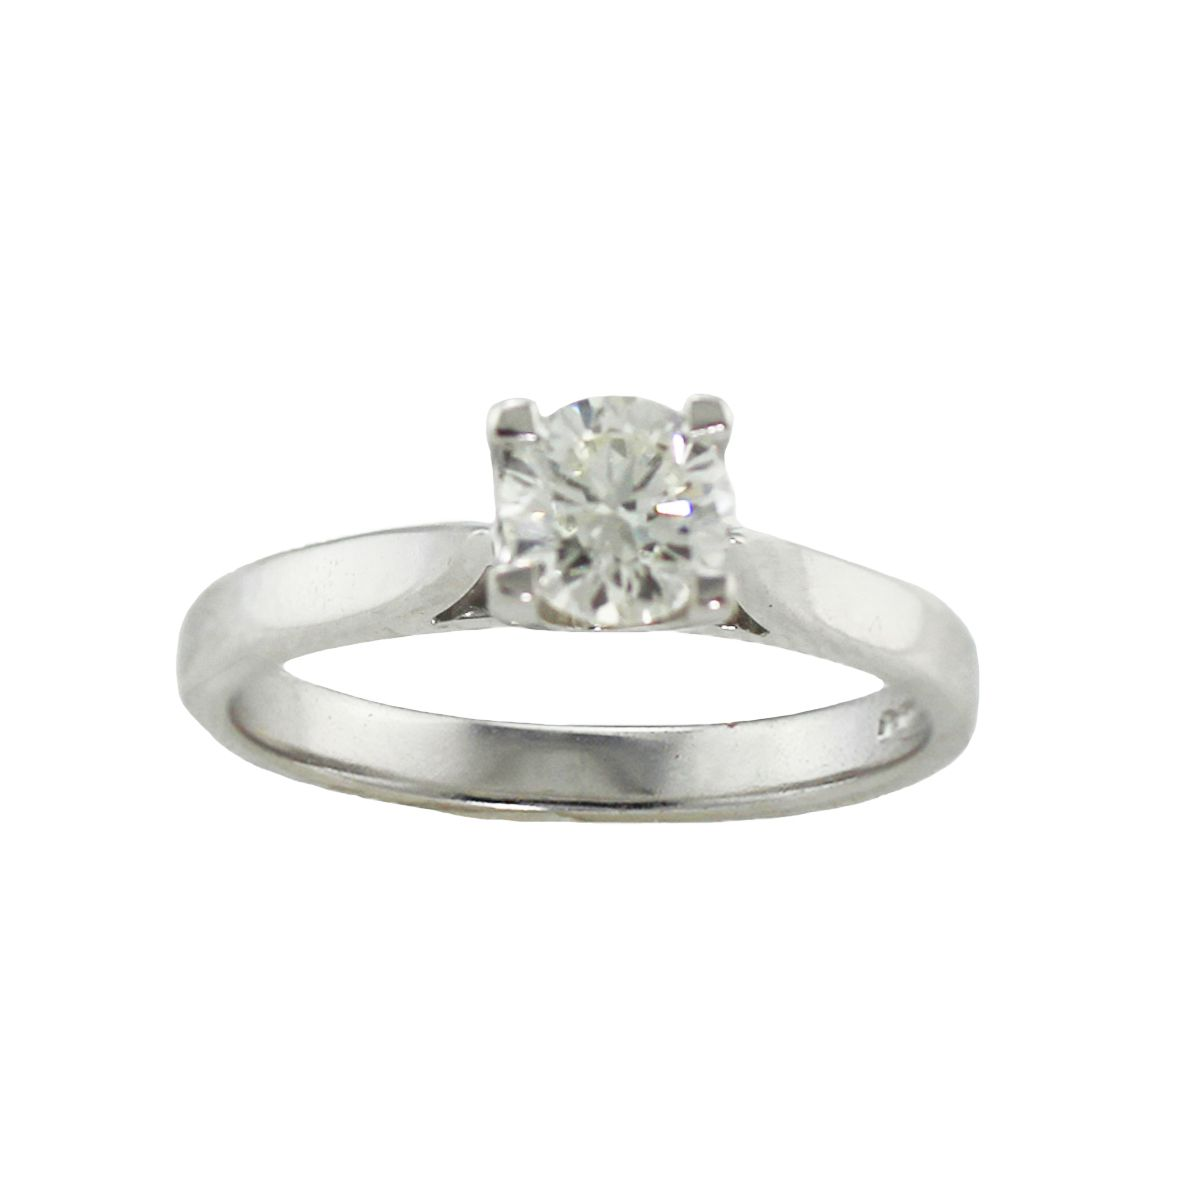 18ct White Gold 0.55ct Diamond Solitaire Ring Ladies Size L